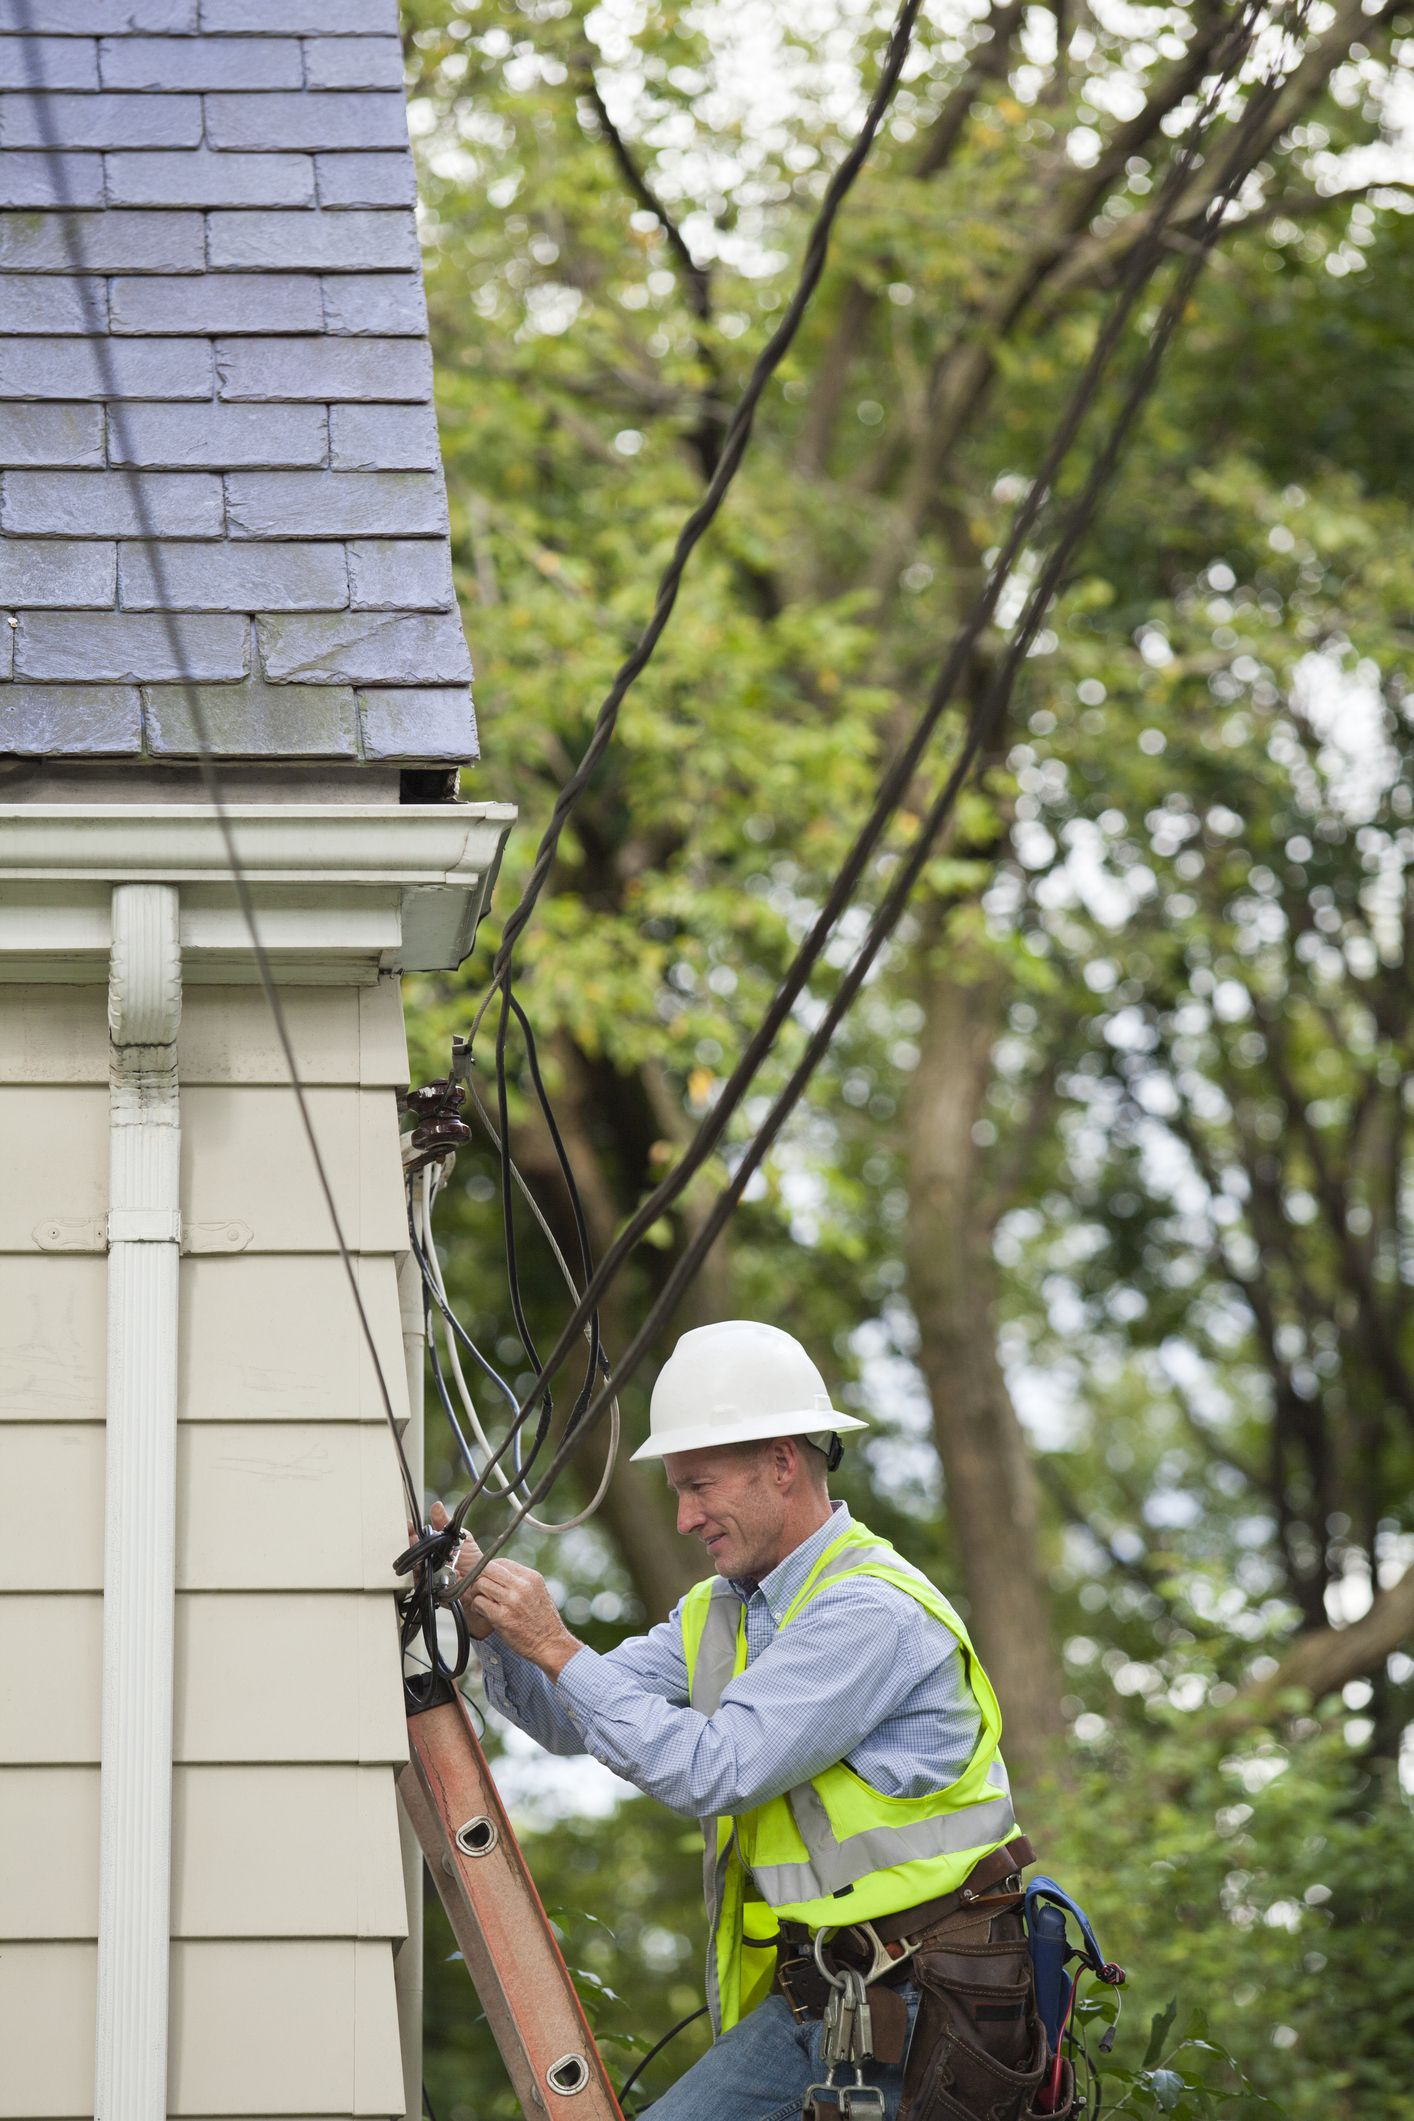 Basics Of Residential Electric Service Drops